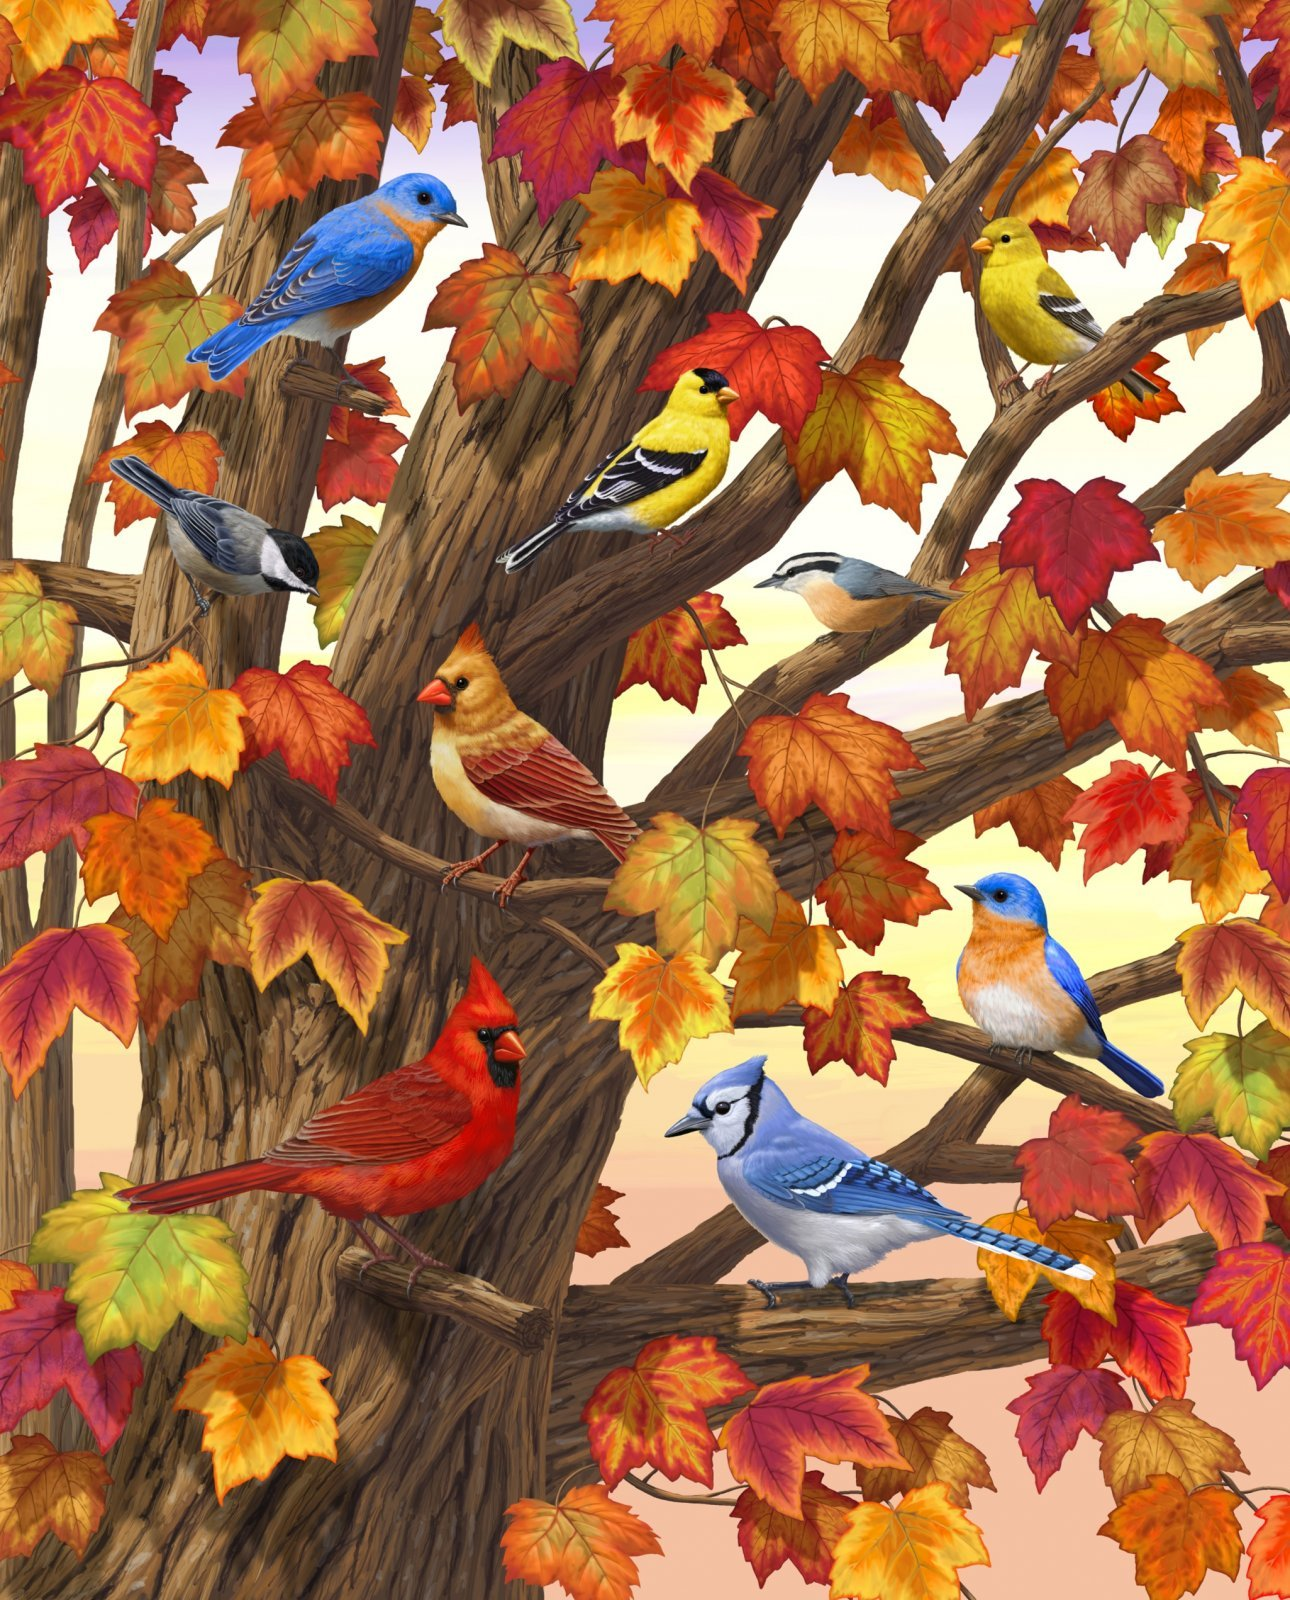 Maple Tree Marvel Panel by Christa Forest (35 x 44) / David Textiles